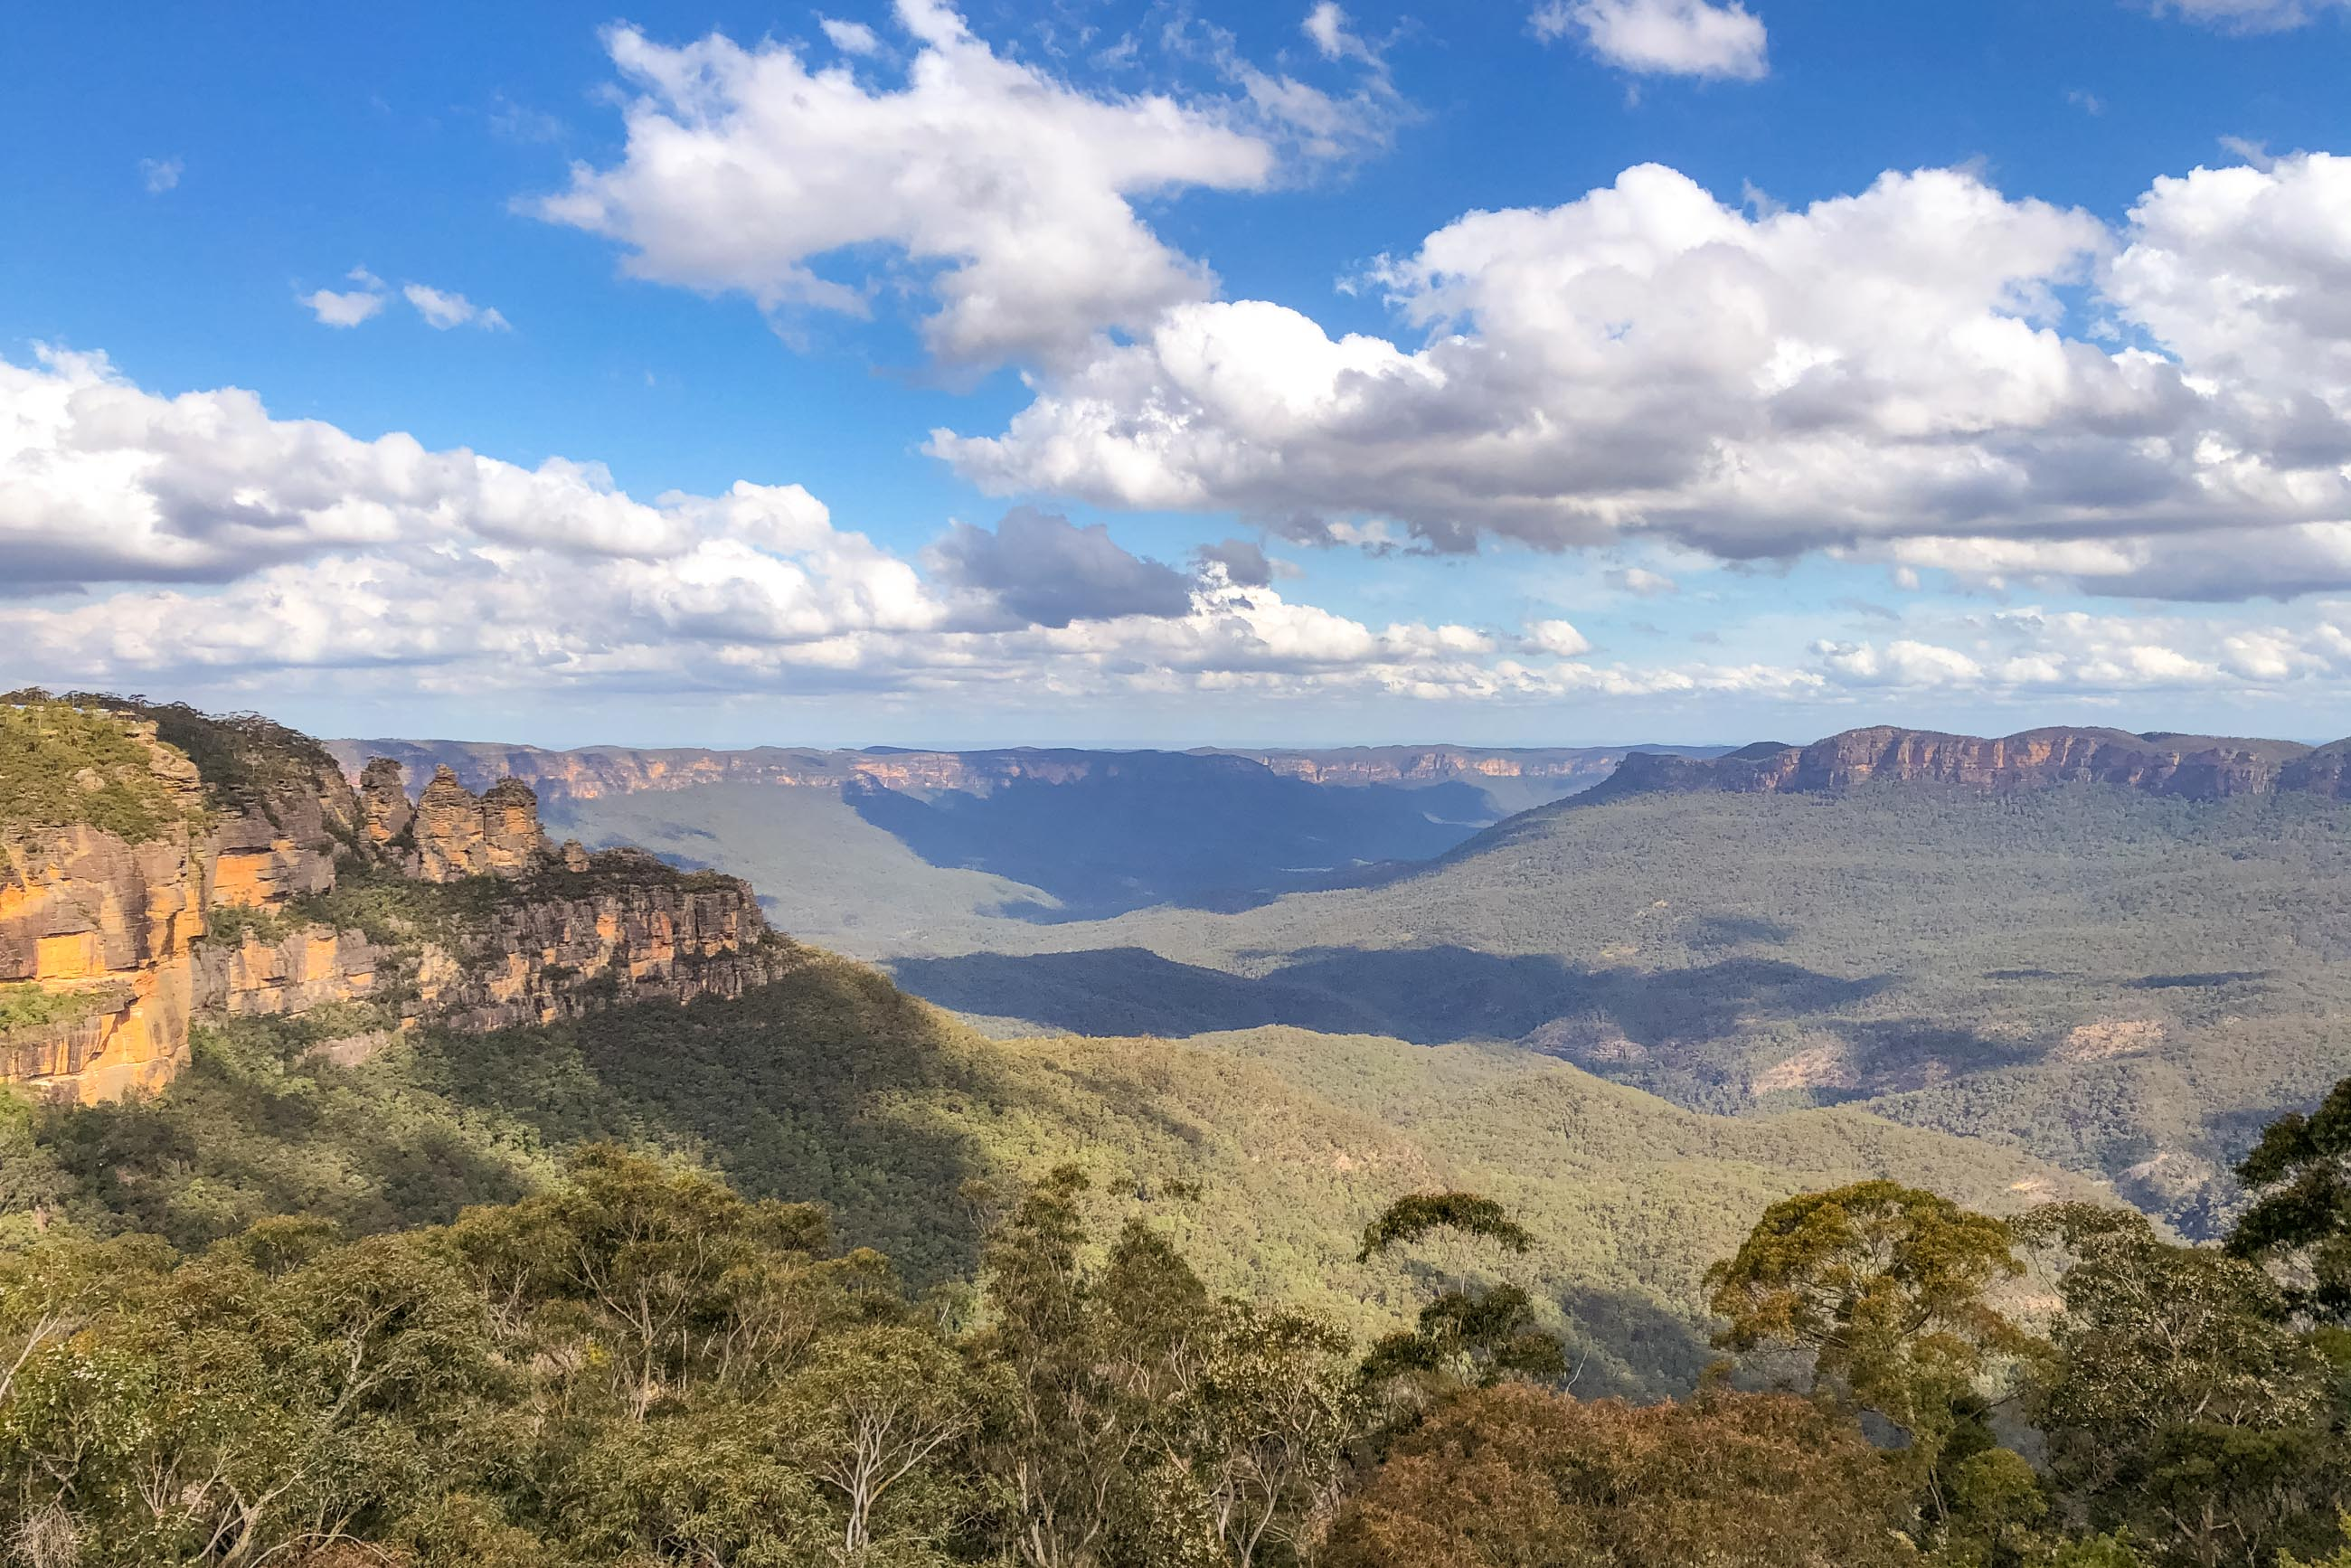 https://bubo.sk/uploads/galleries/5028/veron_hulikova_australia_bluemountains5.jpg